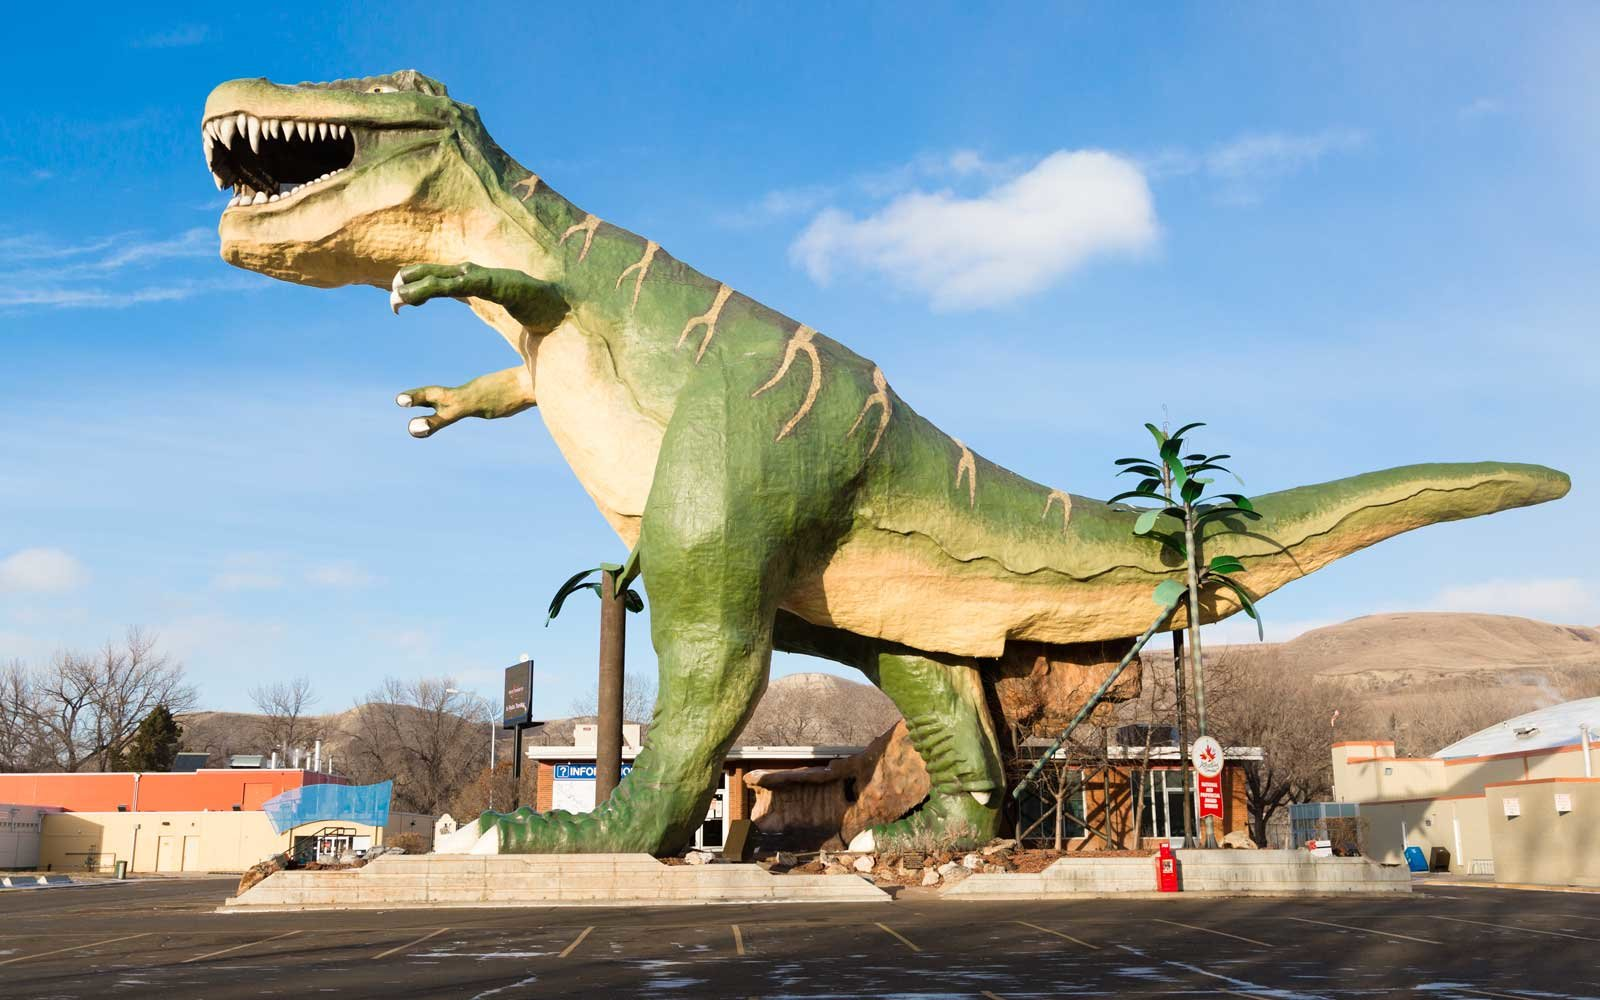 The  World's Largest Dinosaur  is the name of a model Tyrannosaurus rex located in the town of Drumheller, Alberta, Canada.